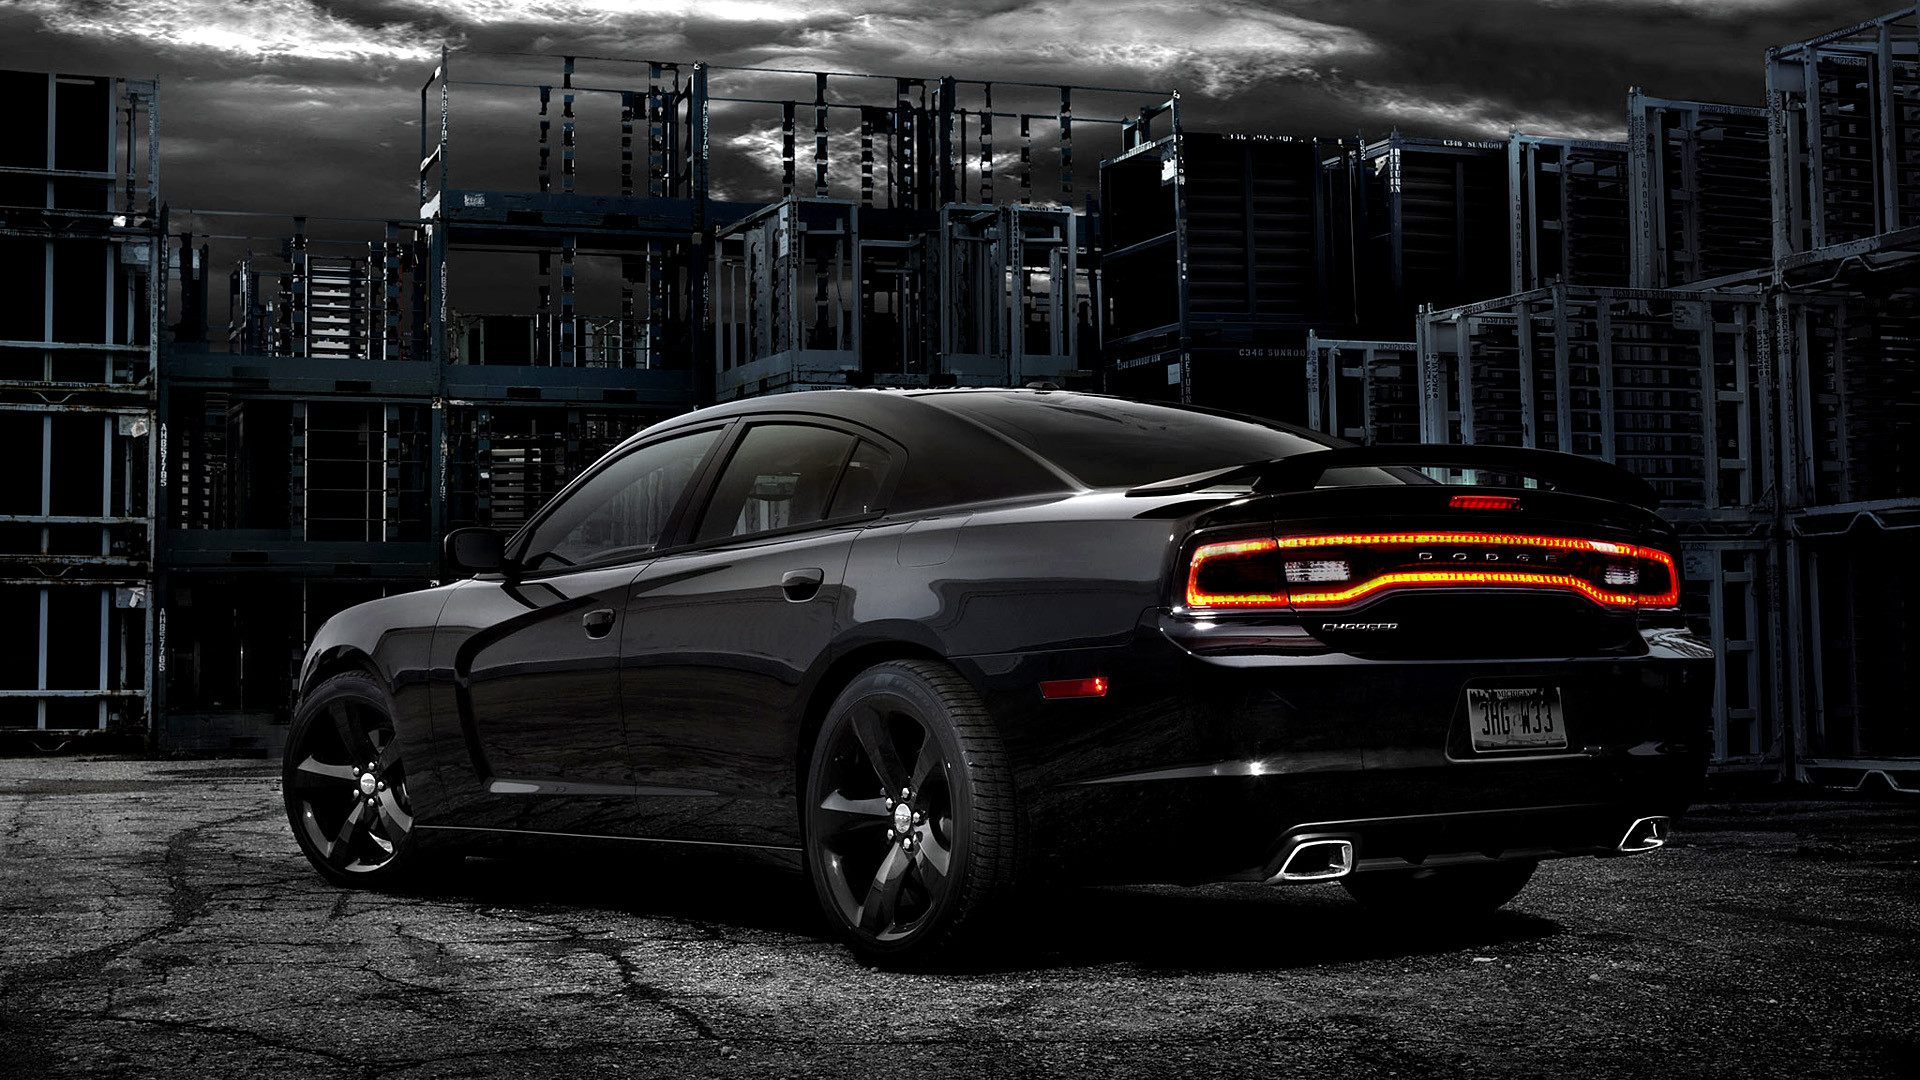 1920x1080 Dodge Charger Wallpapers